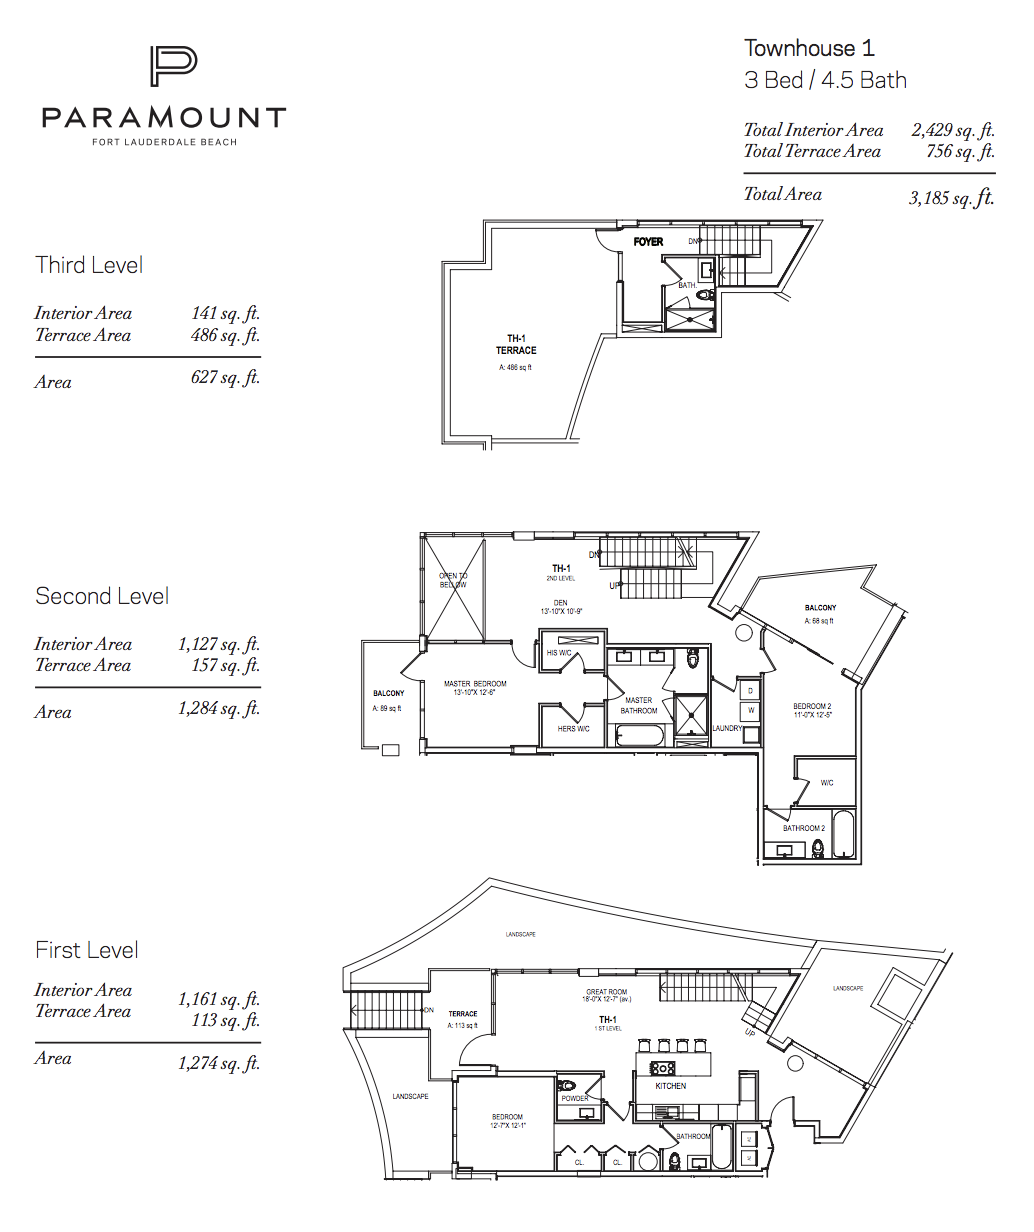 Paramount Residences Fort lauderdale Townhouse 1 | 3 Beds - 4.5 Baths